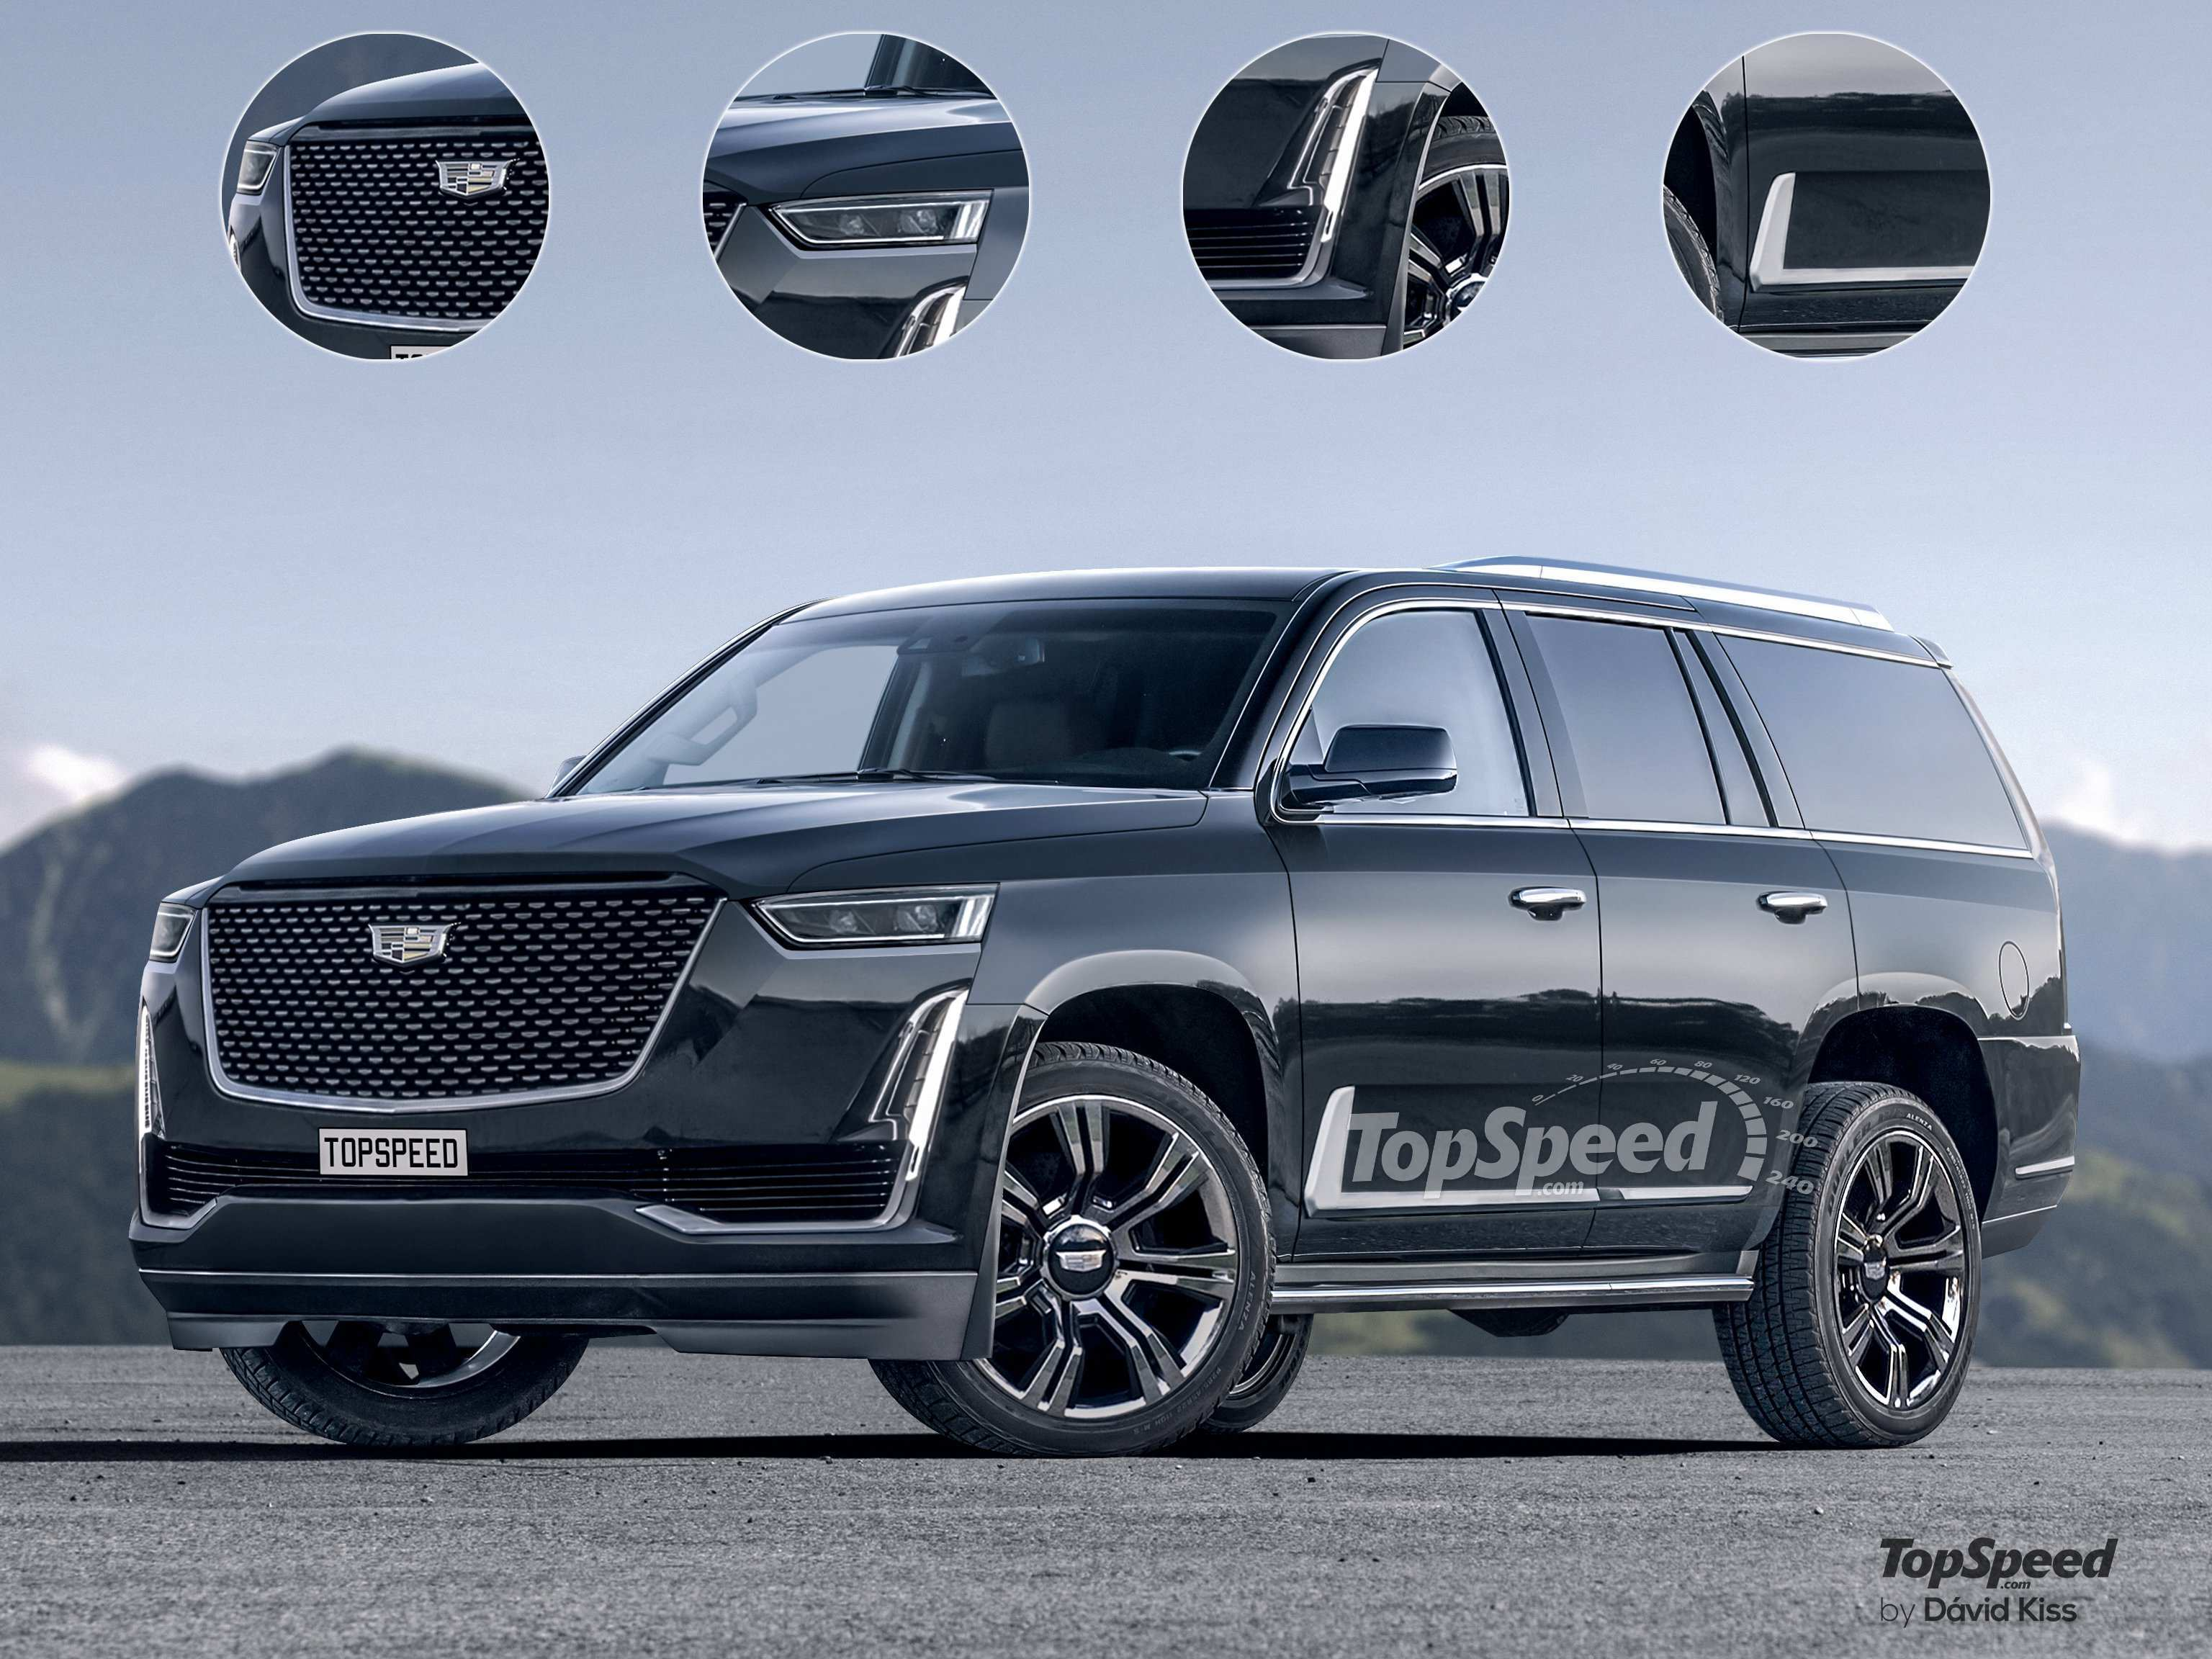 74 Great 2020 Cadillac Escalade V Ext Esv Exterior and Interior with 2020 Cadillac Escalade V Ext Esv